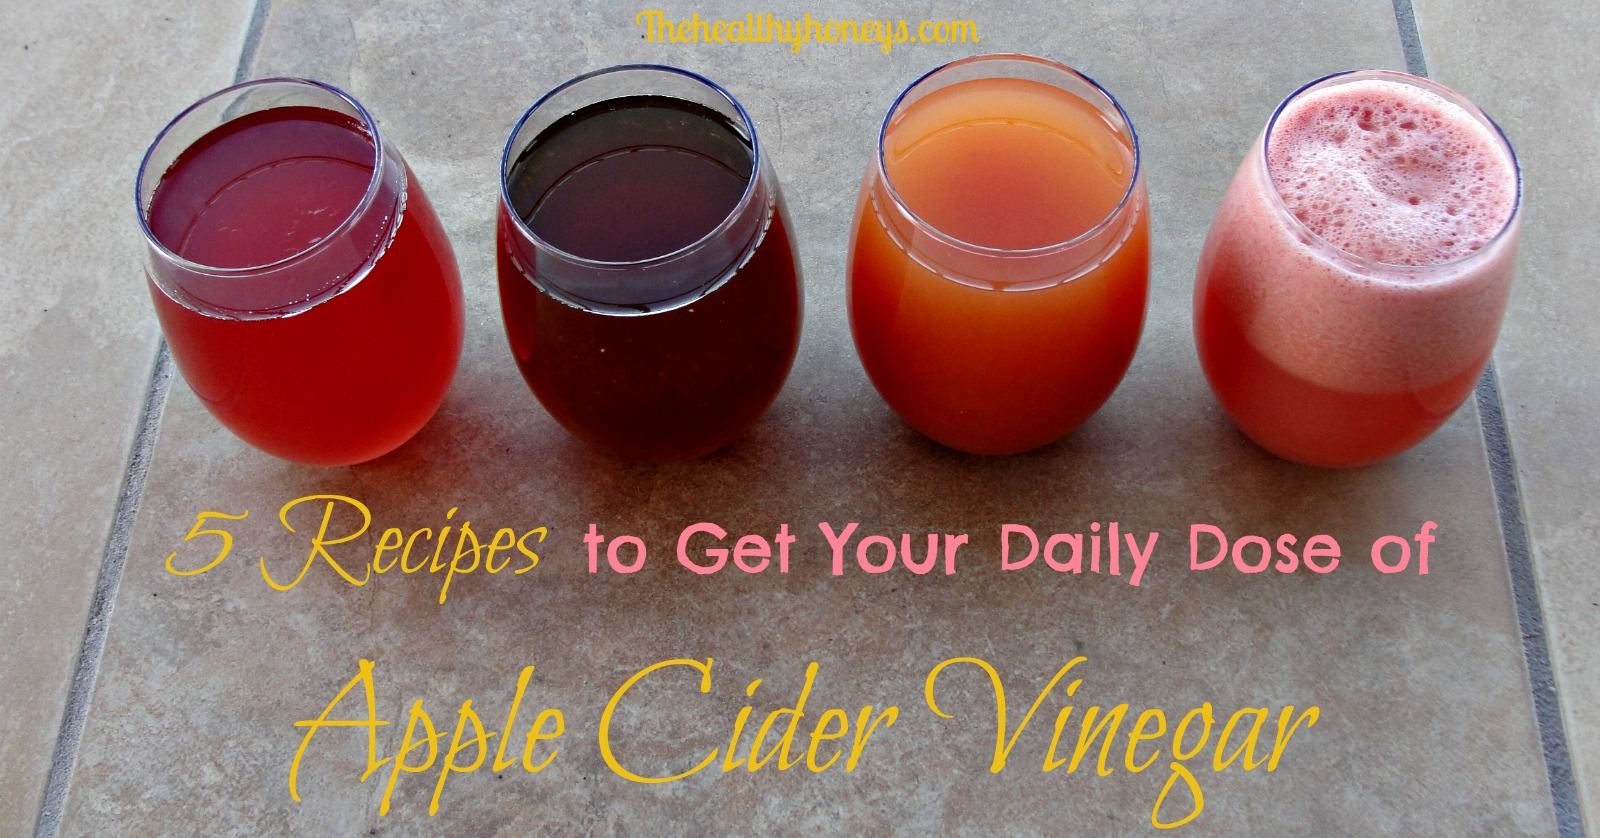 5 recipes to get your daily dose of apple cider vinegar the 5 recipes to get your daily dose of apple cider vinegar the healthy honeys forumfinder Gallery